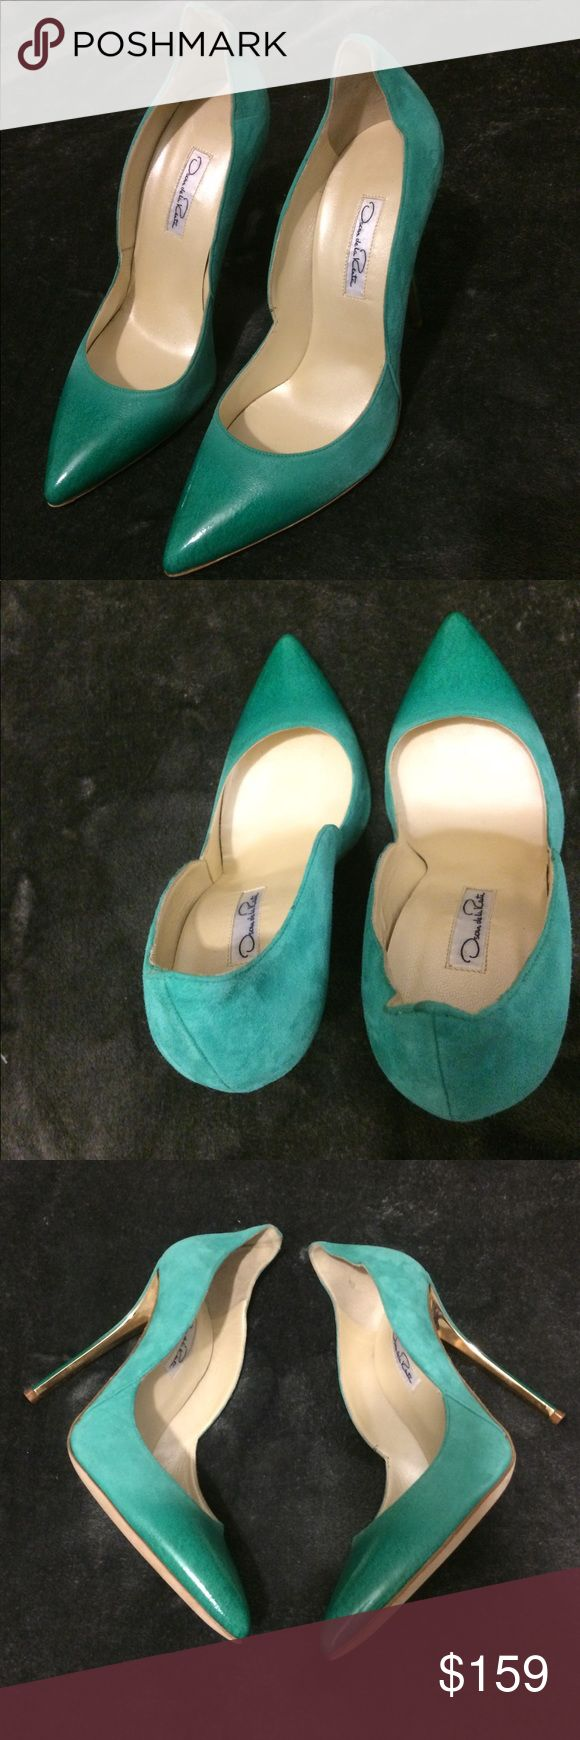 Oscar de la Renta Tami suede pointy toe pumps 39/9 Gorgeous. Unique. Soft Comfy Seafoam green suede Oscar de la Renta Tami pumps with patent leather pointed toes and covered heels featuring gold-tone metal accents. Size Italian 39 / US 9  Imagine these pumps with a sharp black dress on NYE 2018.  Originally $670   Display Pair. Slight signs of being tried on. Otherwise nearly pristine.    Please do your own research on the fit (runs small/large/true-to-size) typical of the designers shoes to…